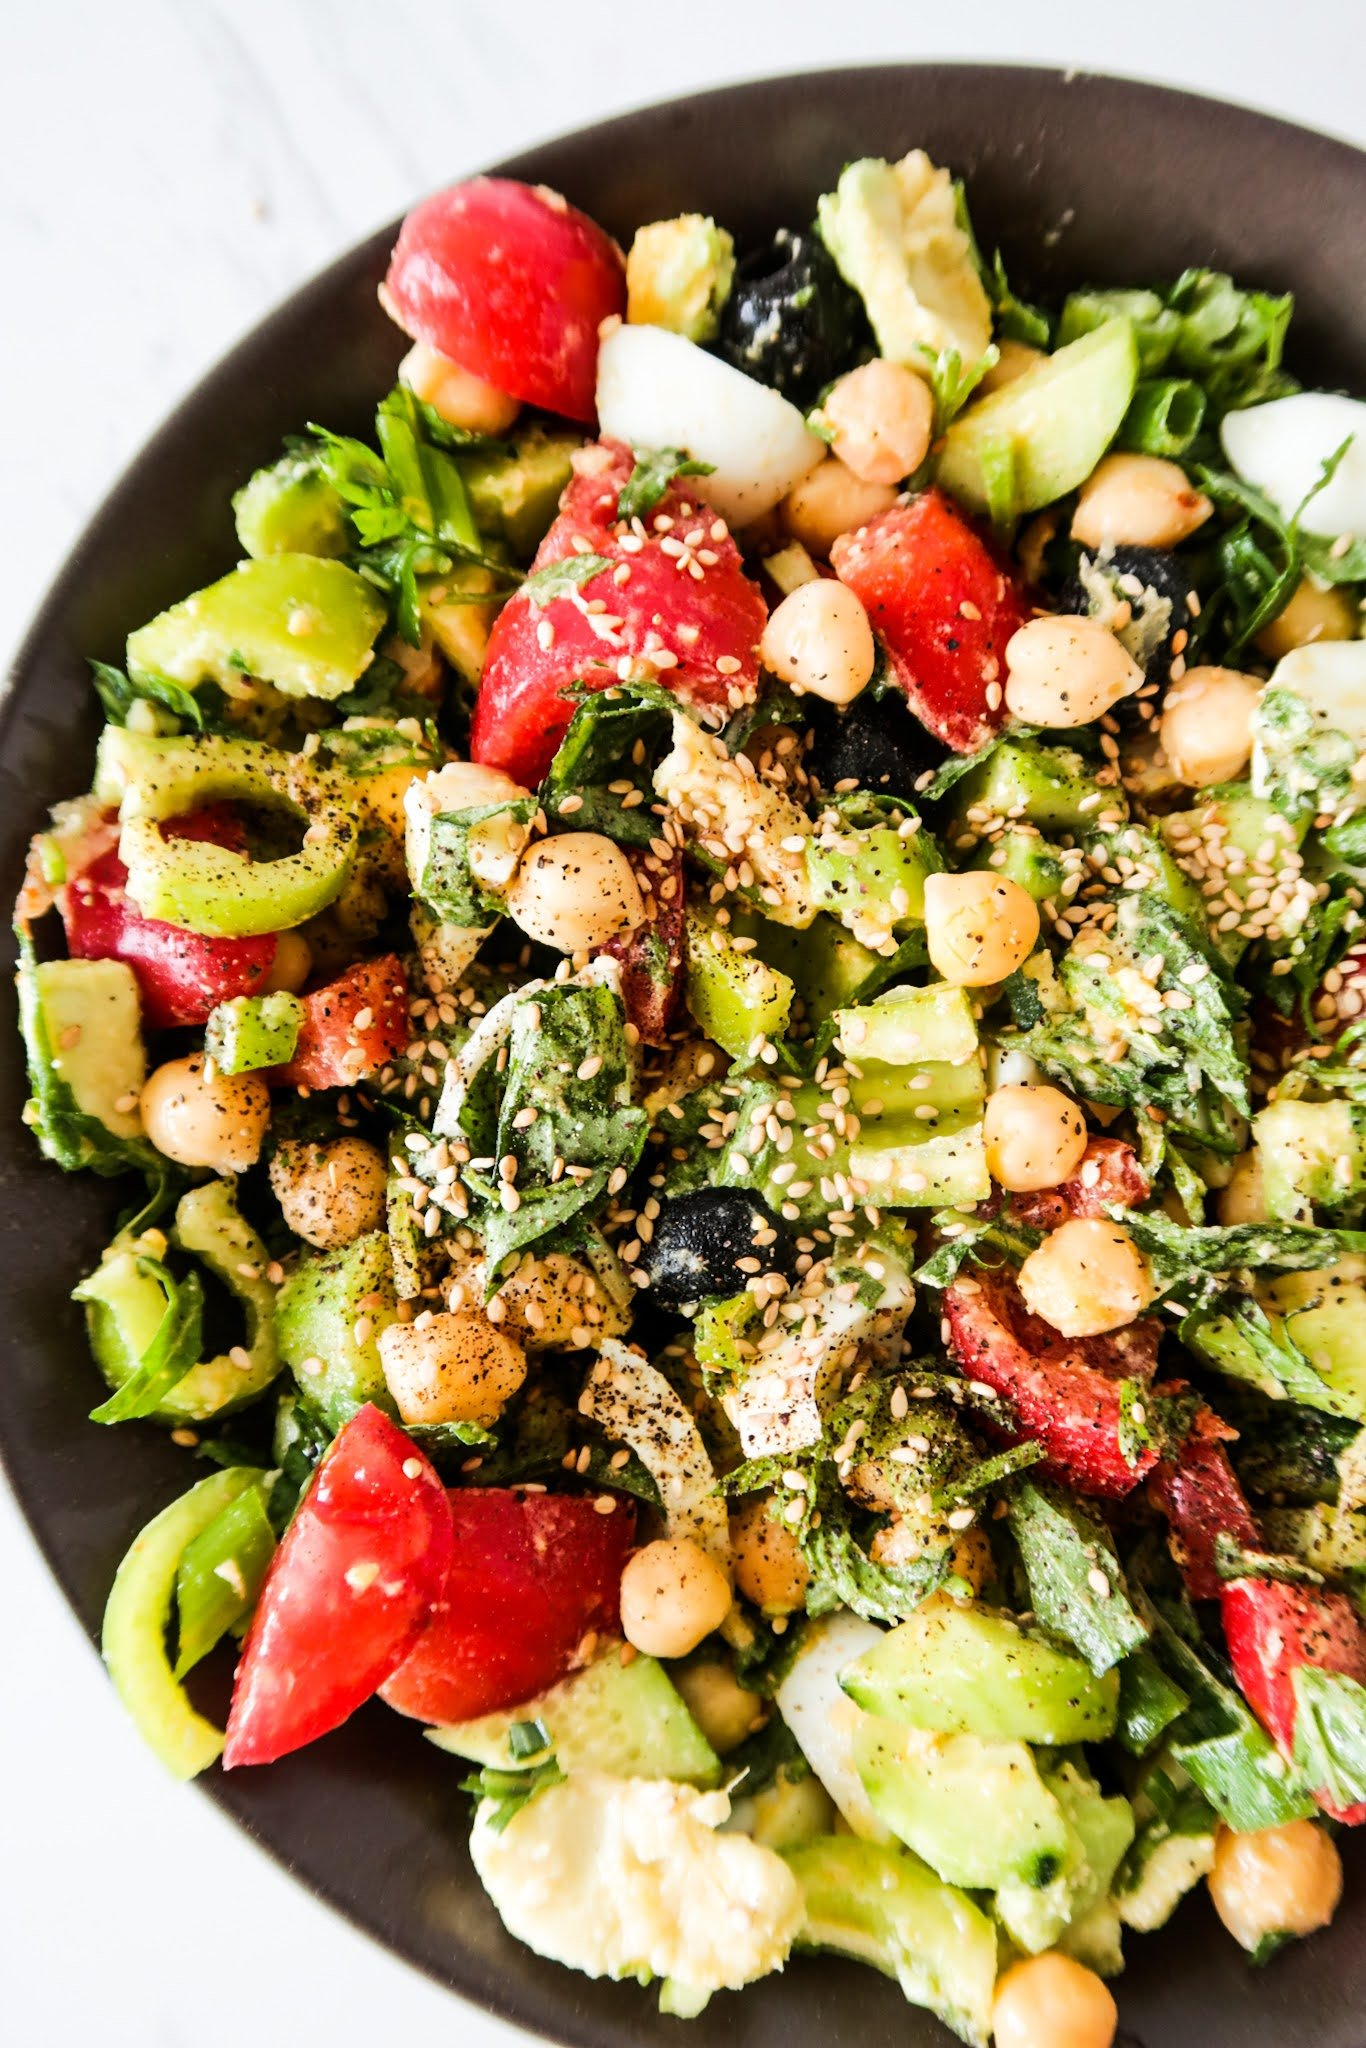 This is an easy and healthy egg and chickpea salad recipe that is protein packed and great for a filling gluten-free lunch. Filled with fresh produce this vegetarian healthy salad is great for summer!